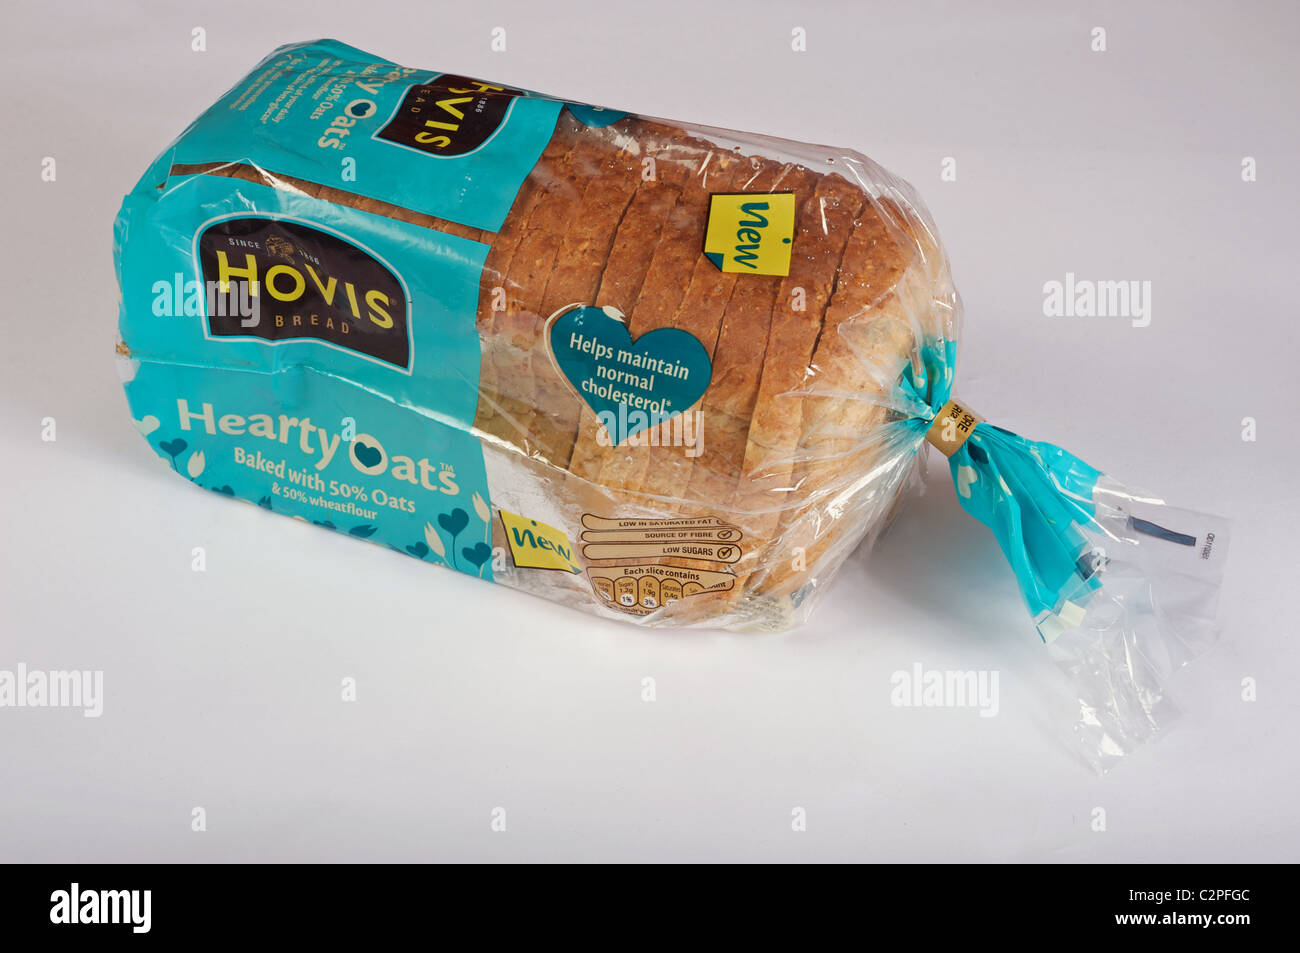 Hovis Hearty Oats bread - Stock Image